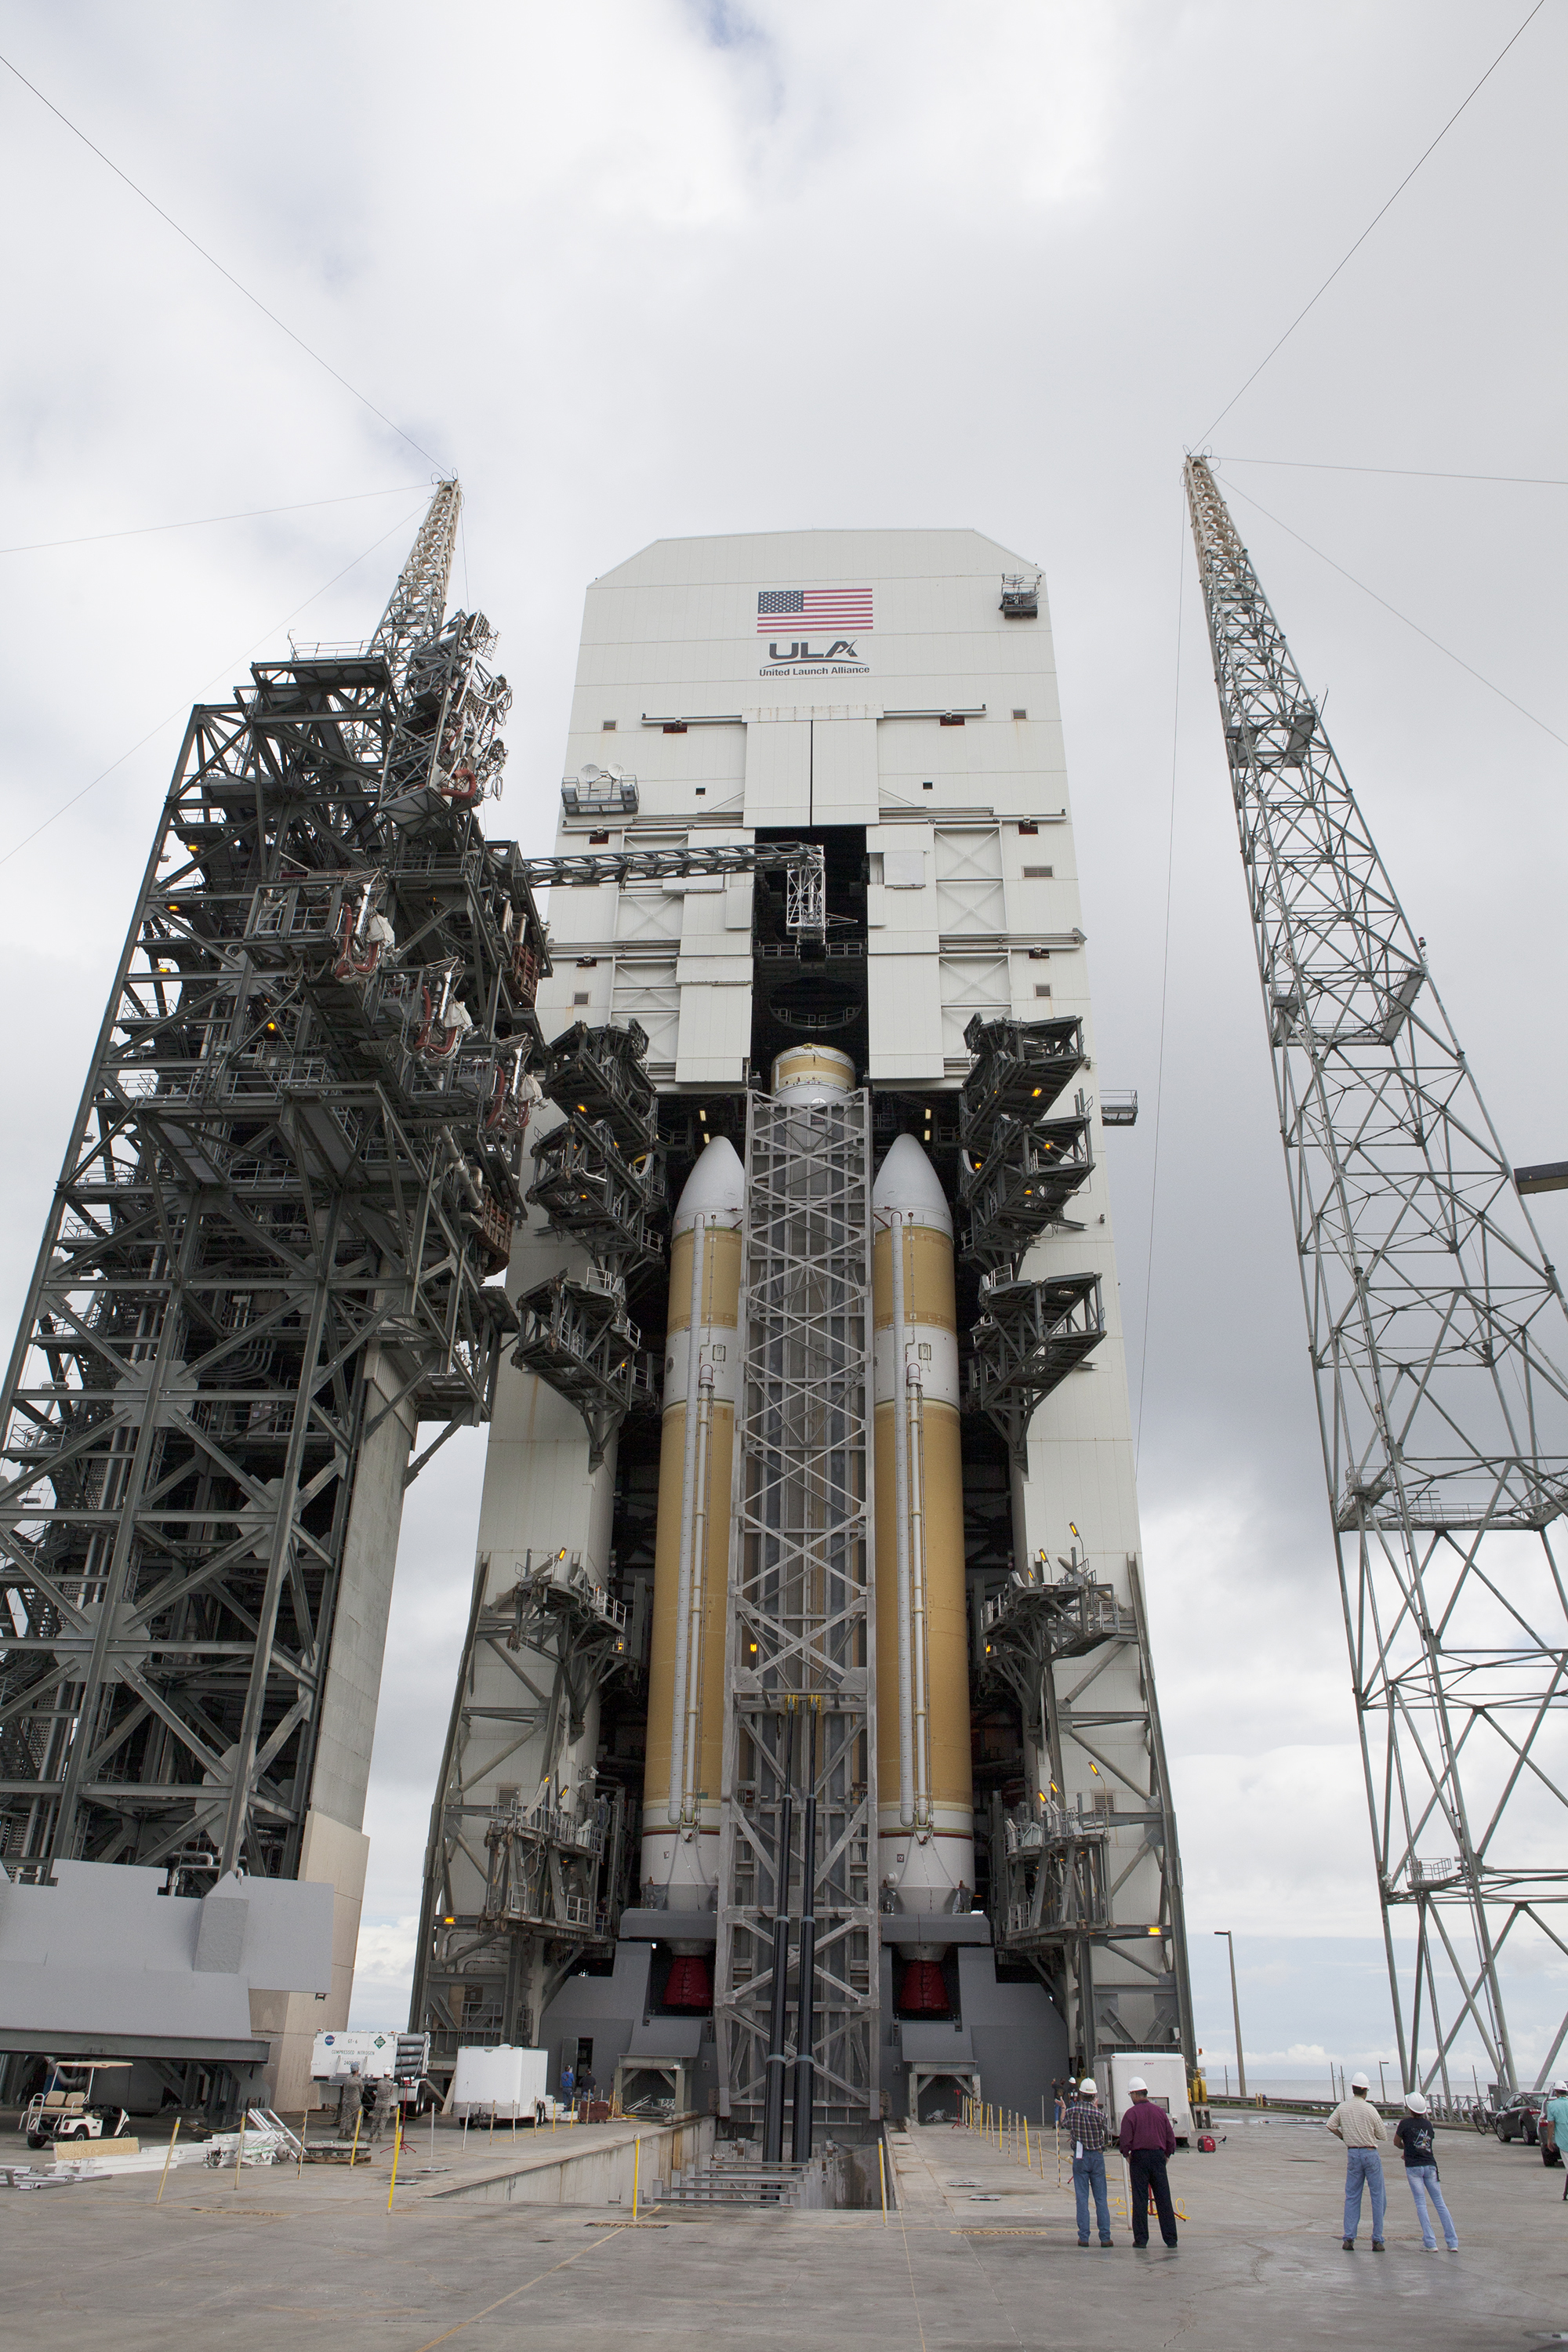 The United Launch Alliance Delta IV Heavy rocket that will send NASA's Orion spacecraft on its first flight test in December was moved to its vertical launch position Oct. 1 at Space Launch Complex 37 at Cape Canaveral Air Force Station in Florida. The rocket is secured on the Elevated Platform Transporter.